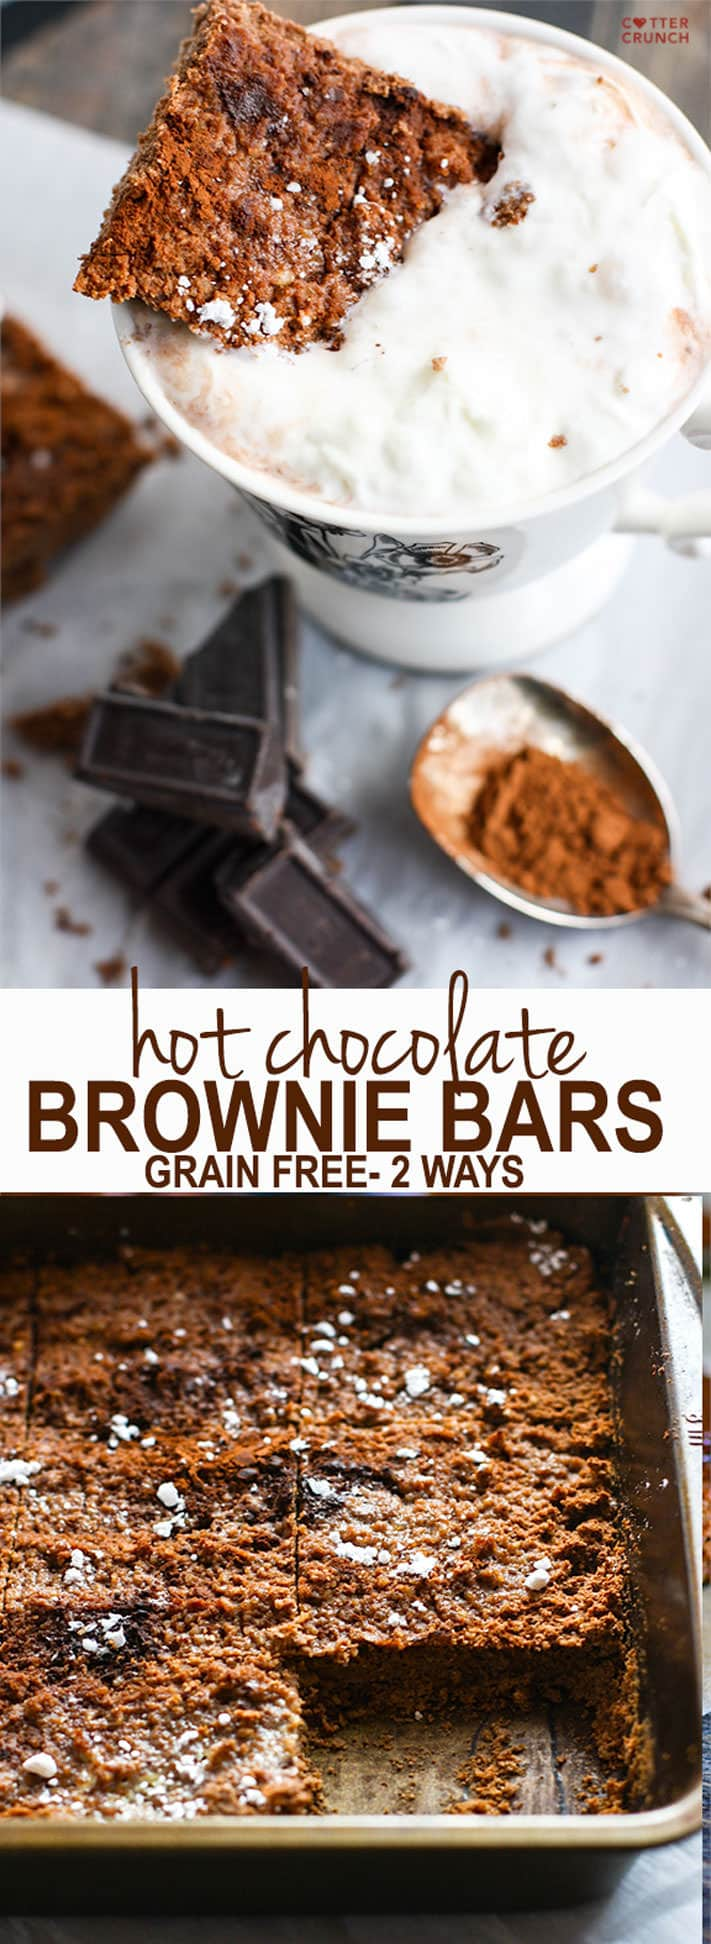 Grain Free Hot Chocolate Brownies! Basically hot cocoa in bar and super delicious! These grain free hot chocolate brownies can me made two ways; rich milk chocolate or lower sugar with dark chocolate and an egg free option! Either way, they are great to pair with cup of coffee, steamer, or hot chocolate of course! Ready in less than an hour! #cottercrunch #bestbodyfoods